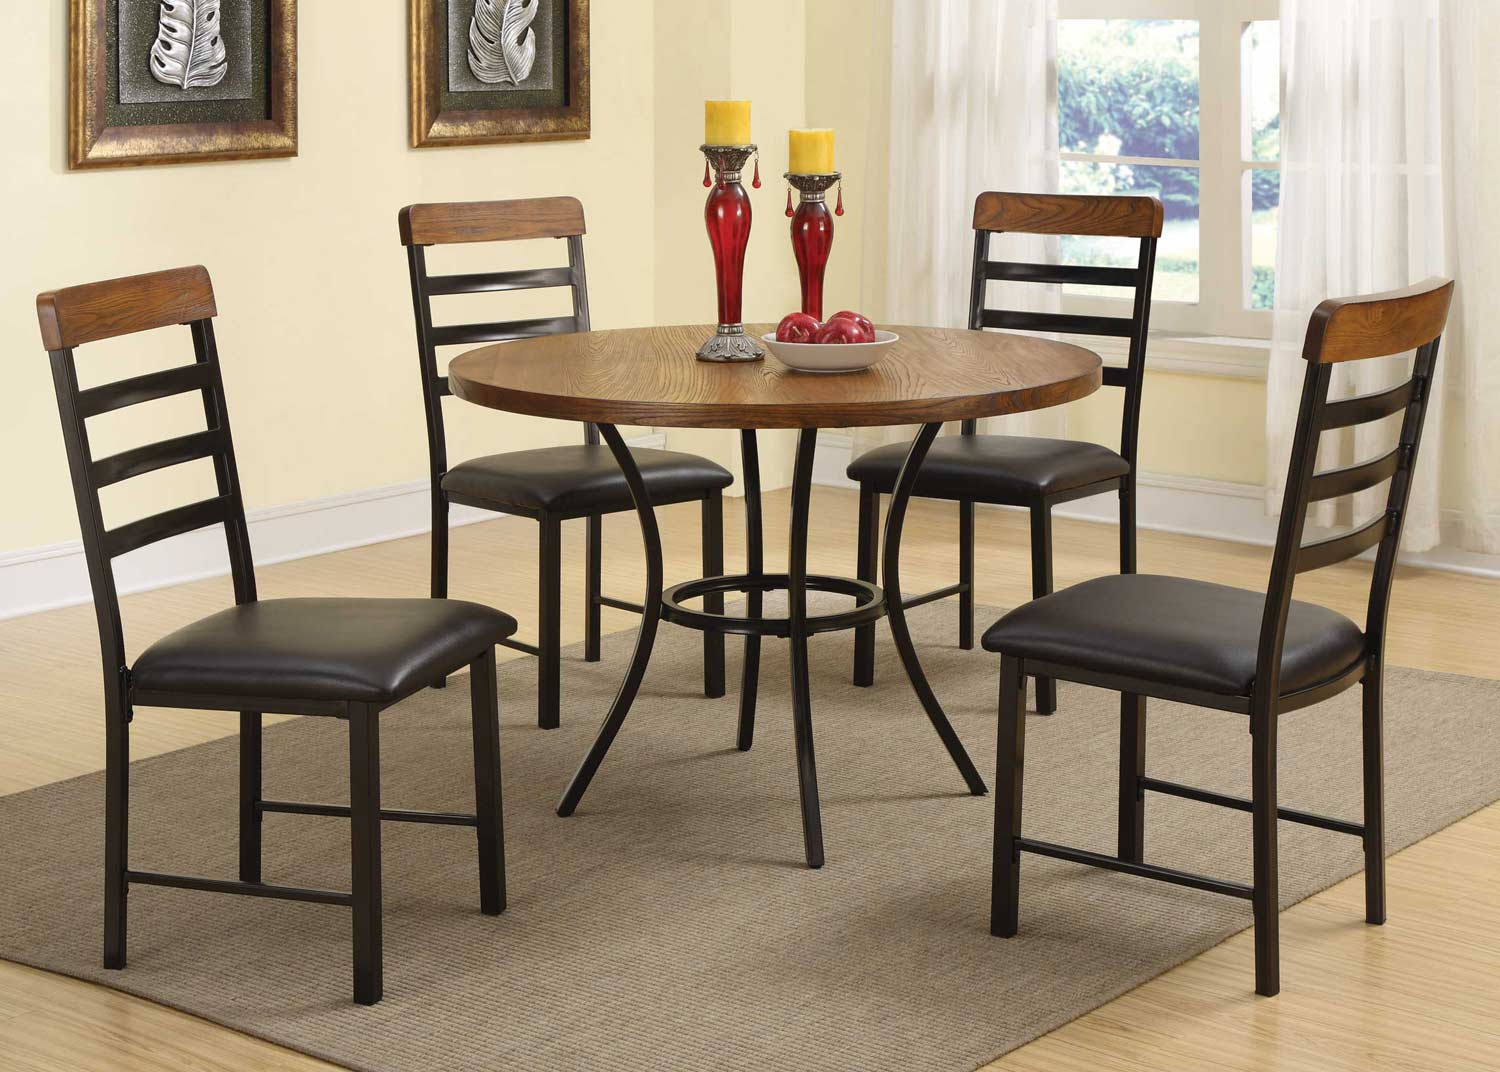 coaster noah 5 piece dining set dark brown 150164